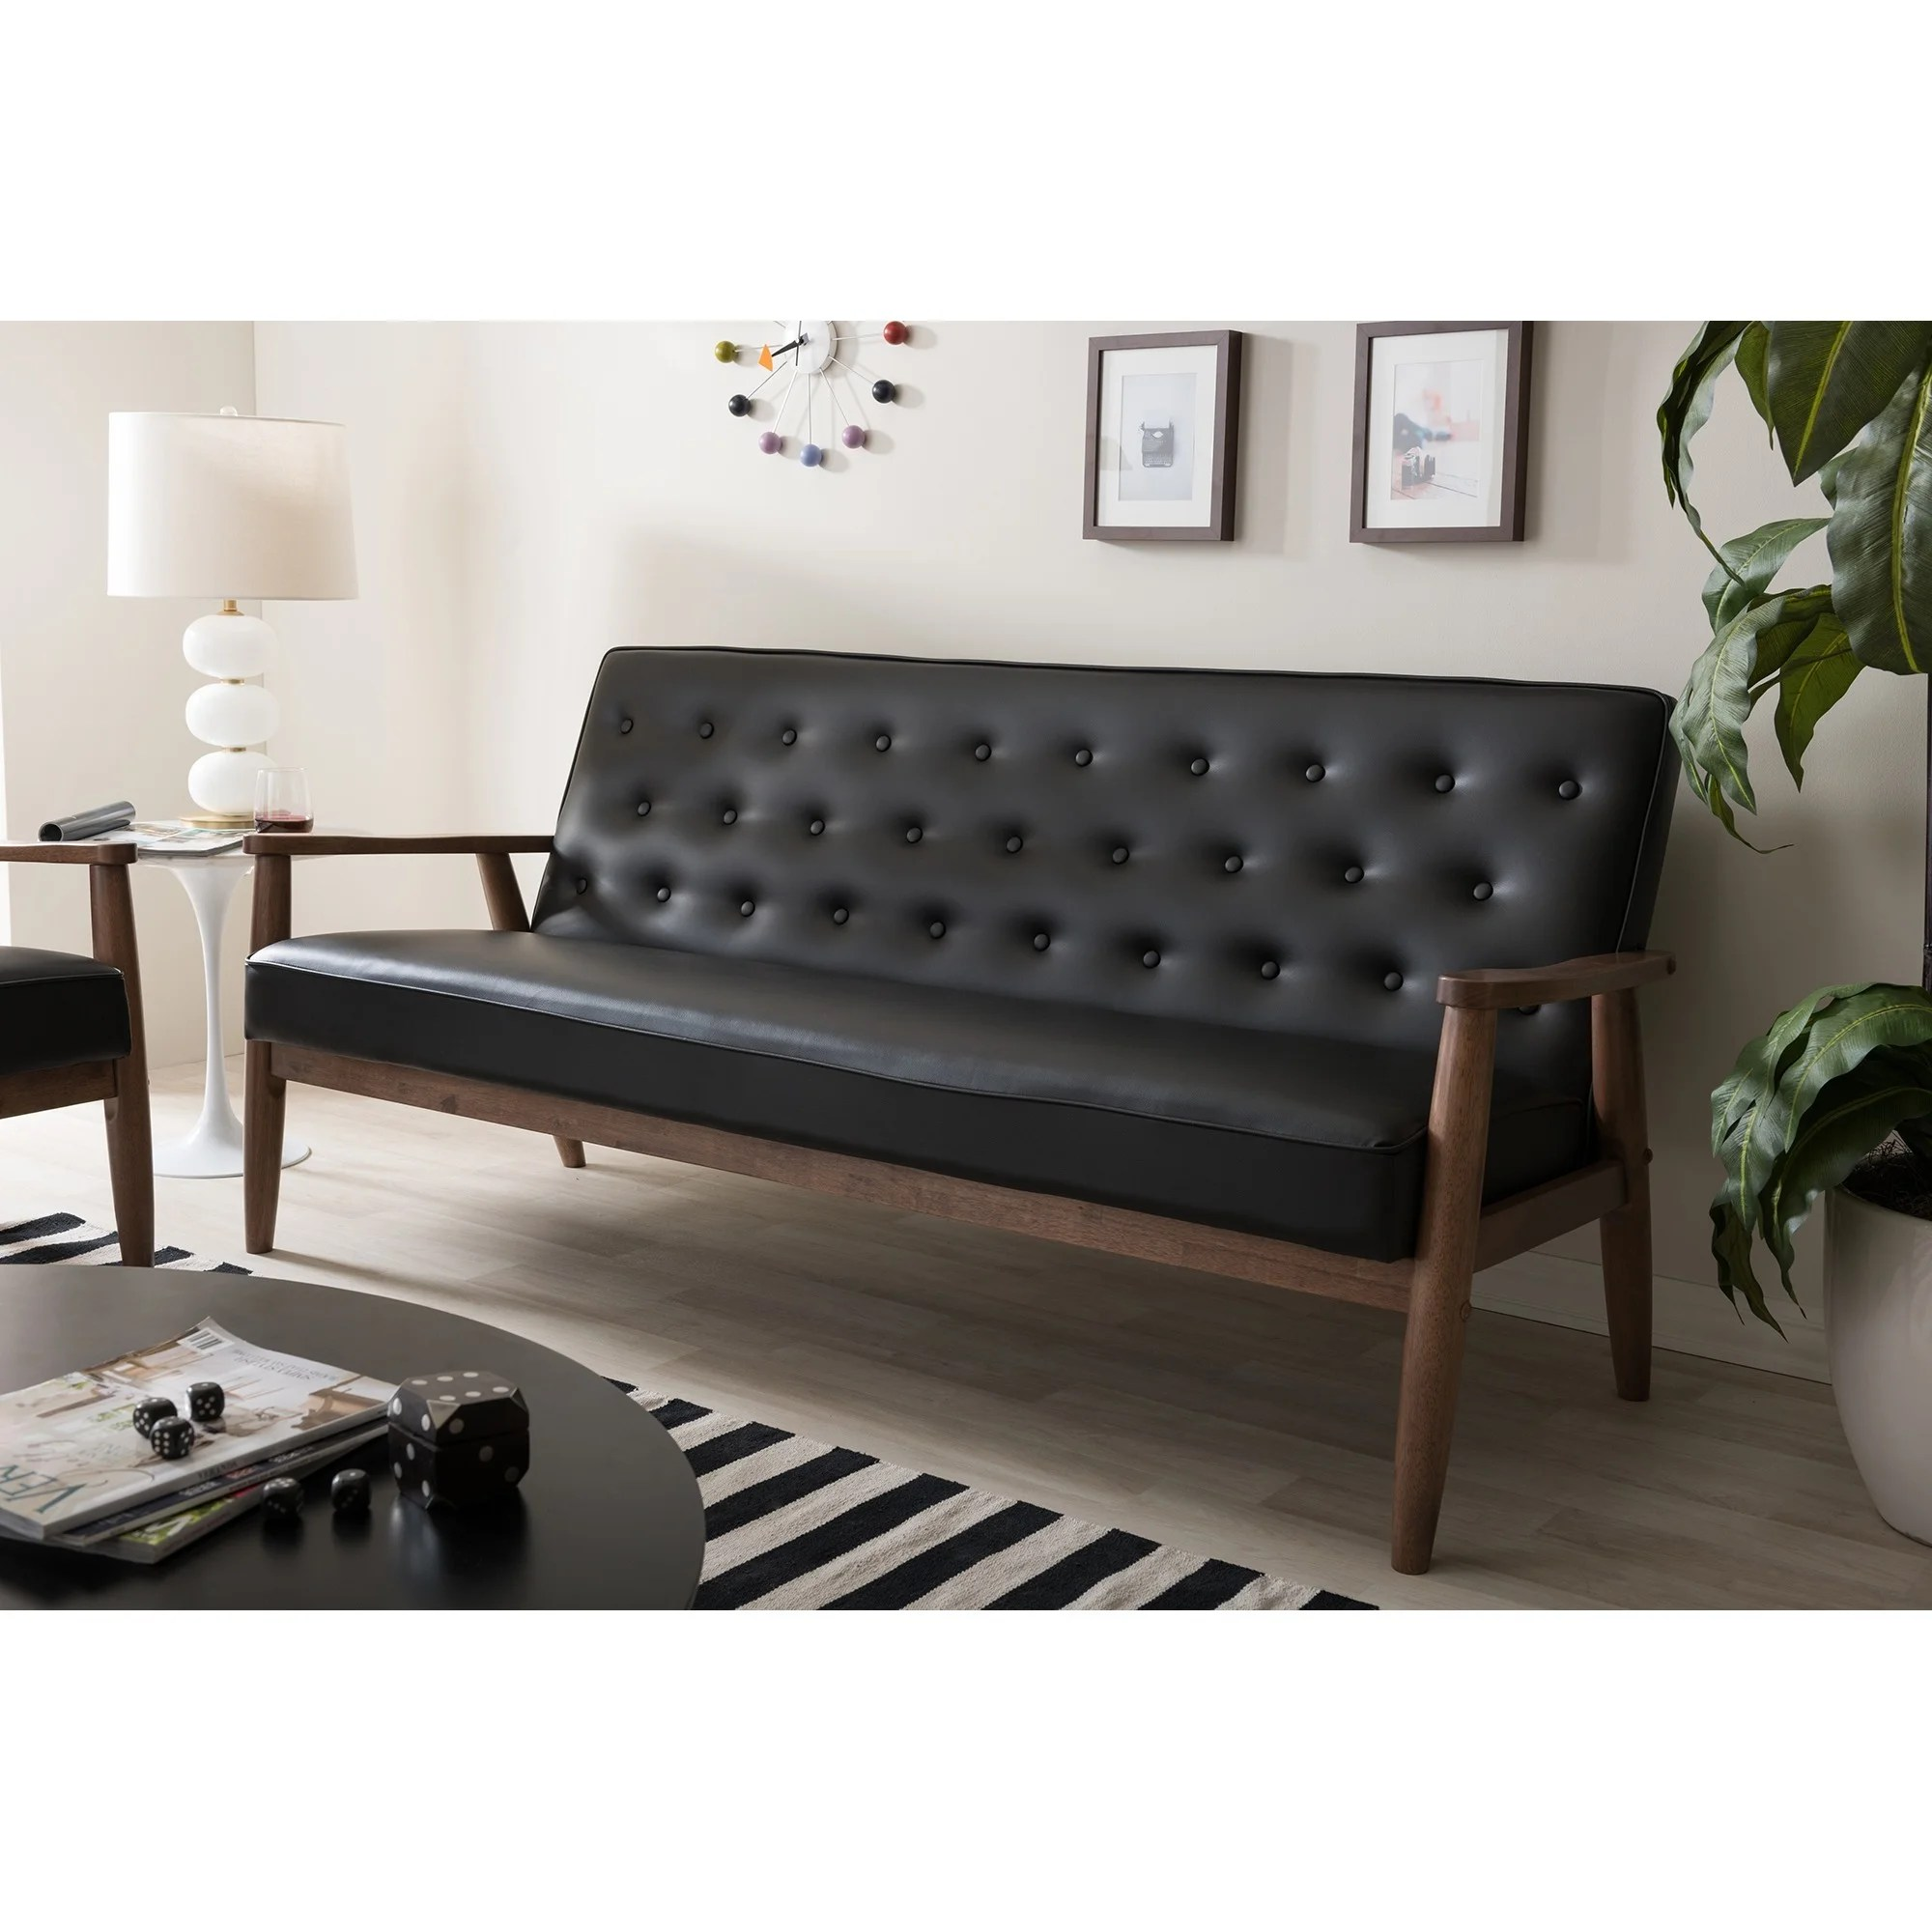 Retro Sofa Leather Baxton Studio Sorrento Mid Century Retro Modern Black Faux Leather Upholstered Wooden 3 Seater Sofa